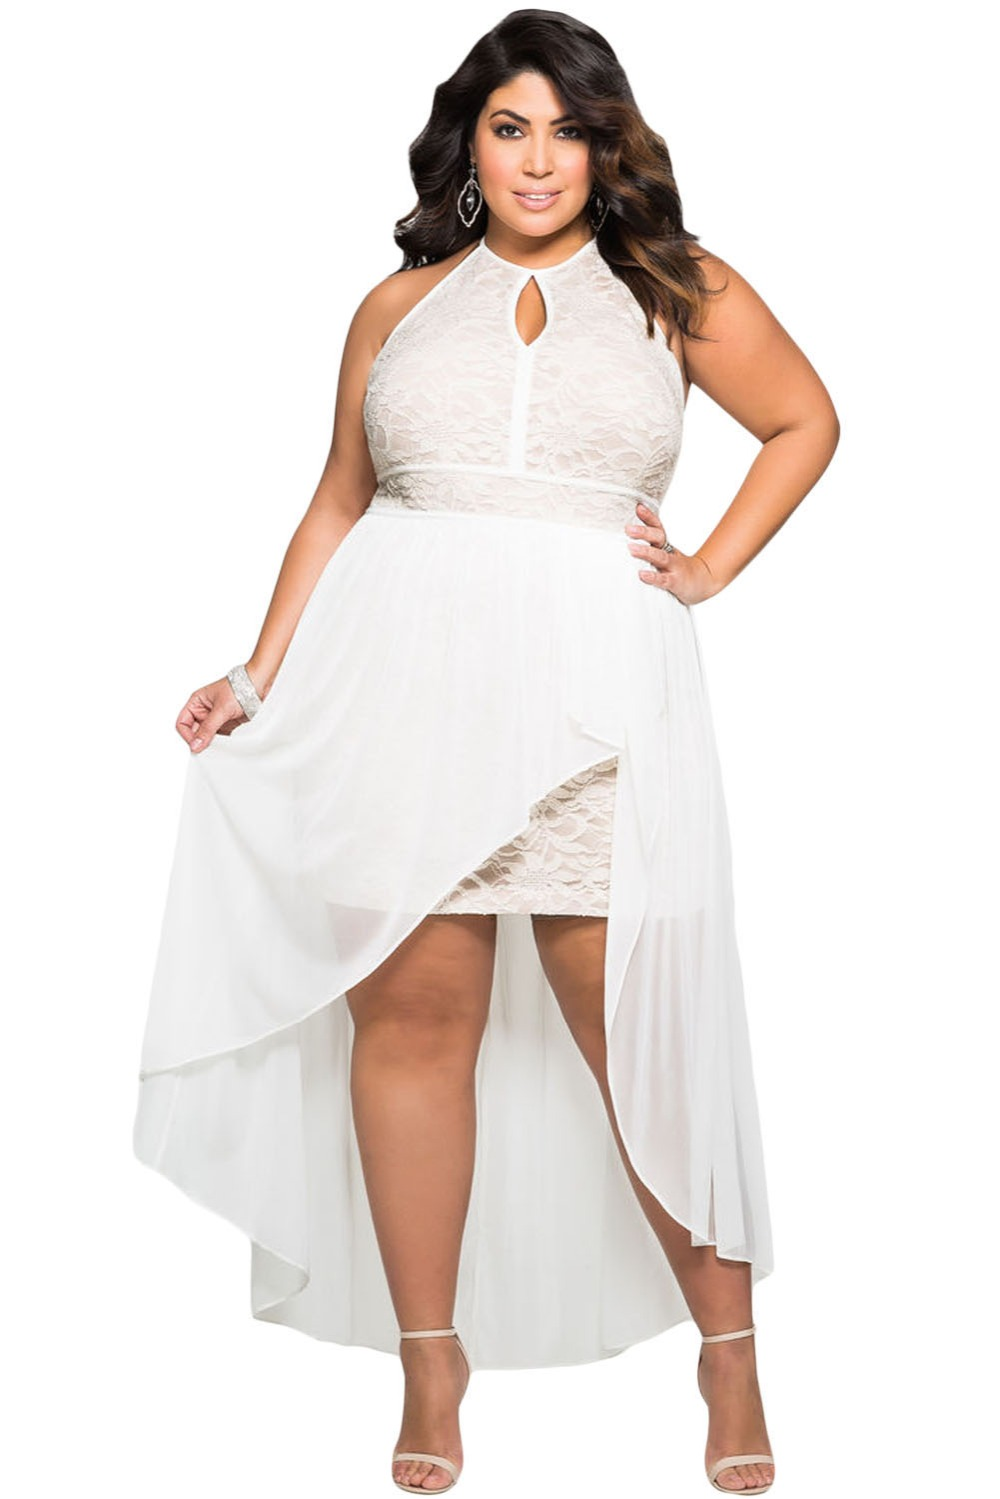 50 Trendy Plus Size New Years Eve Dresses 2019